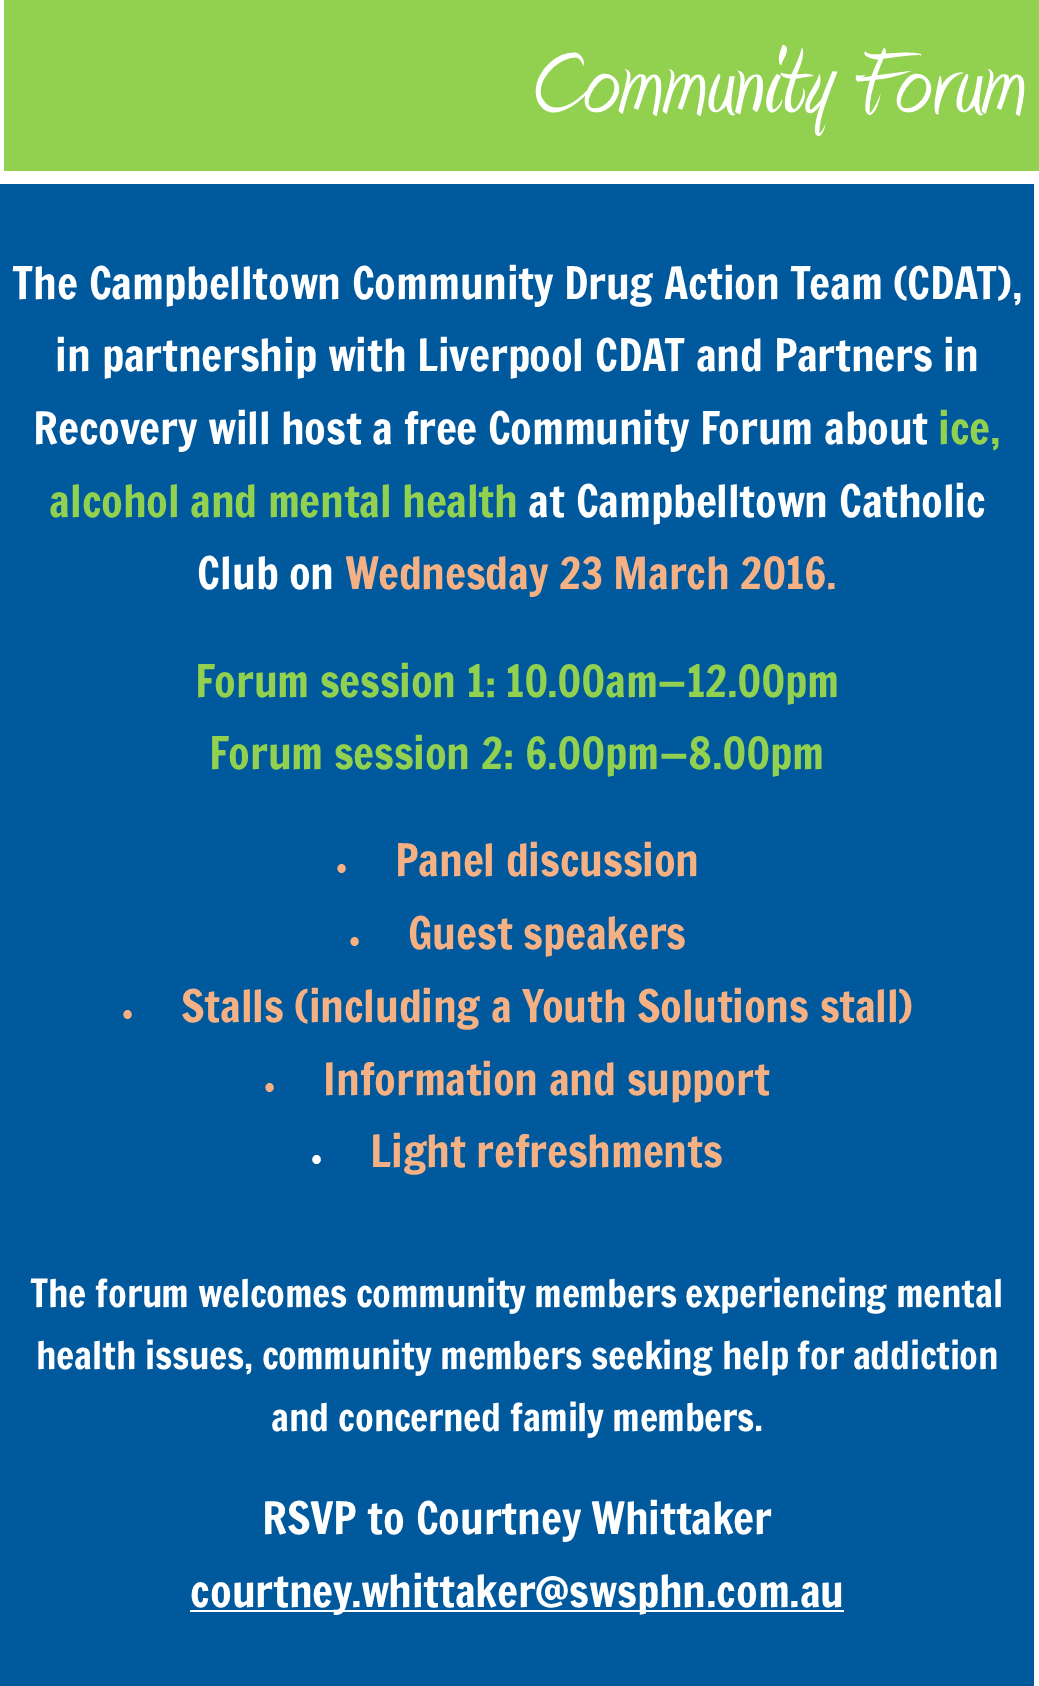 Community Forum for ice, alcohol and mental health to be held in Campbelltown.